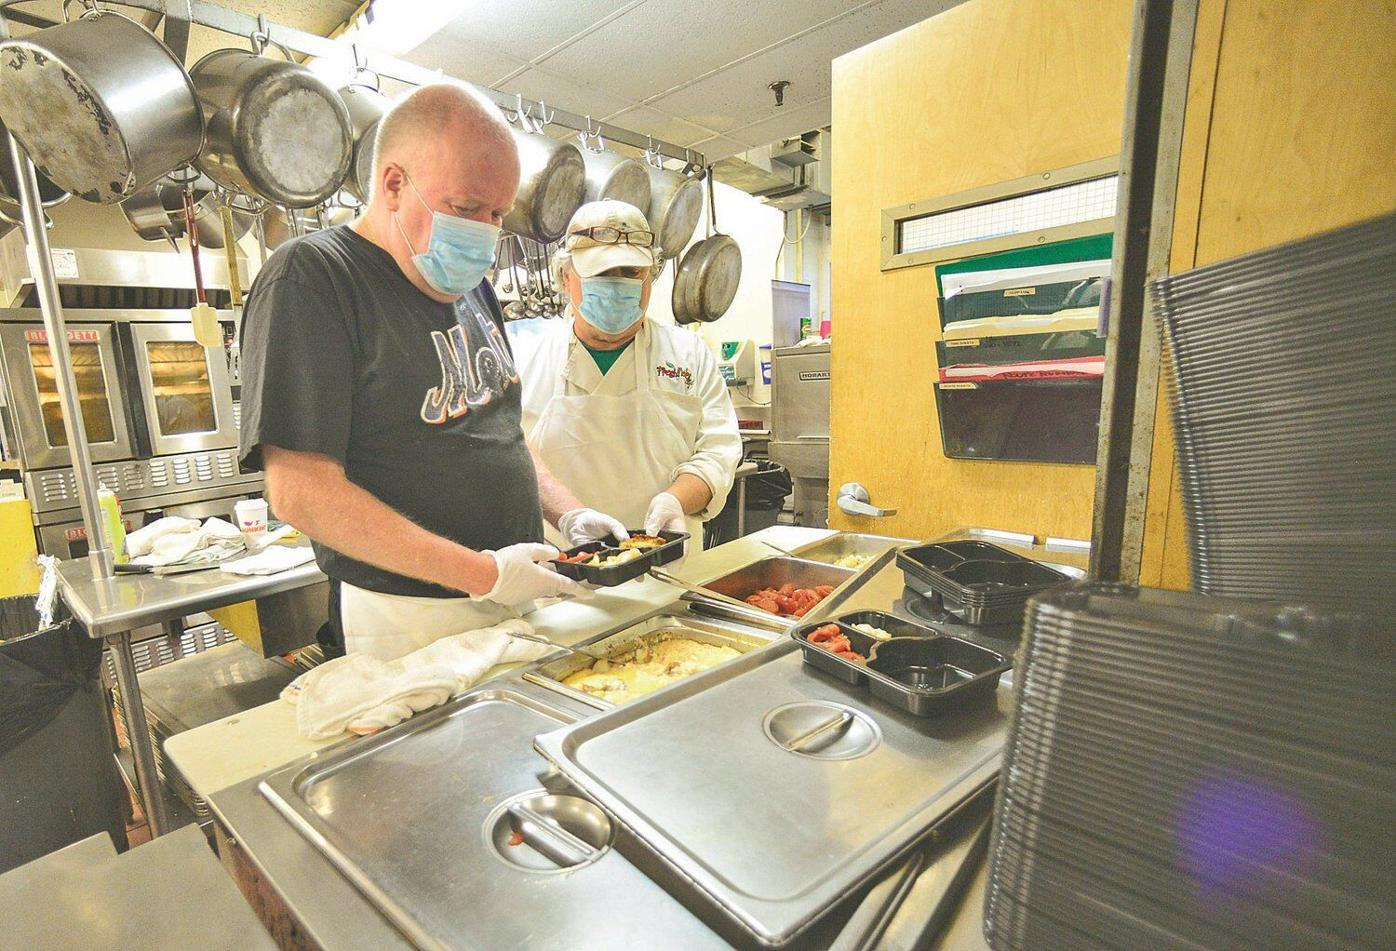 Meals on Wheels reaches more in need